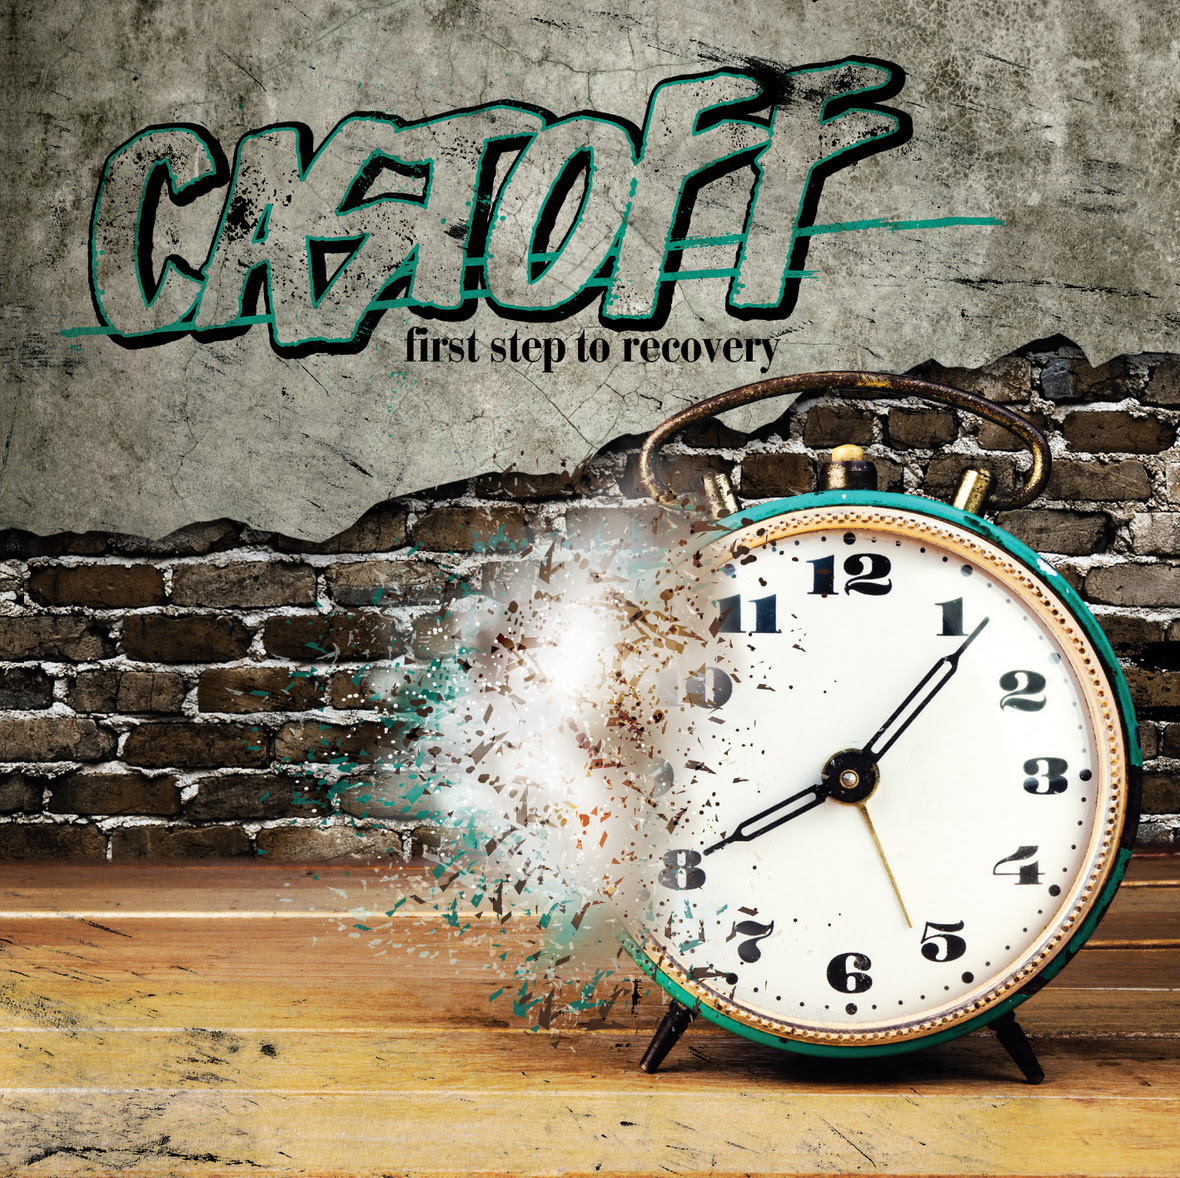 castoff cover art